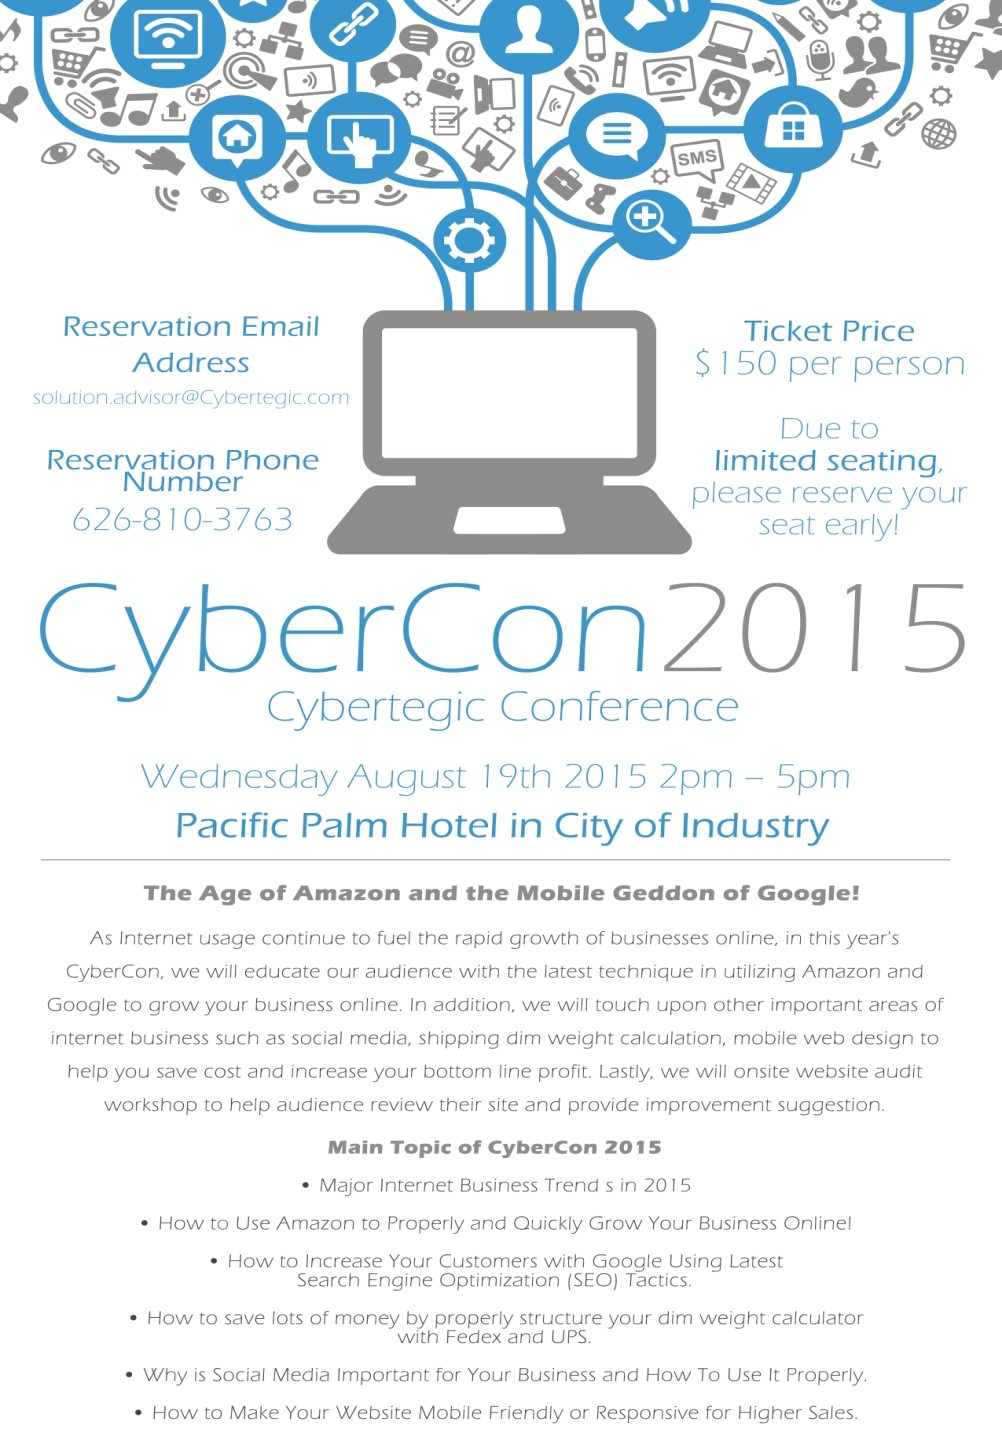 Learn How to Grow Your Business Online at Cybercon 2015